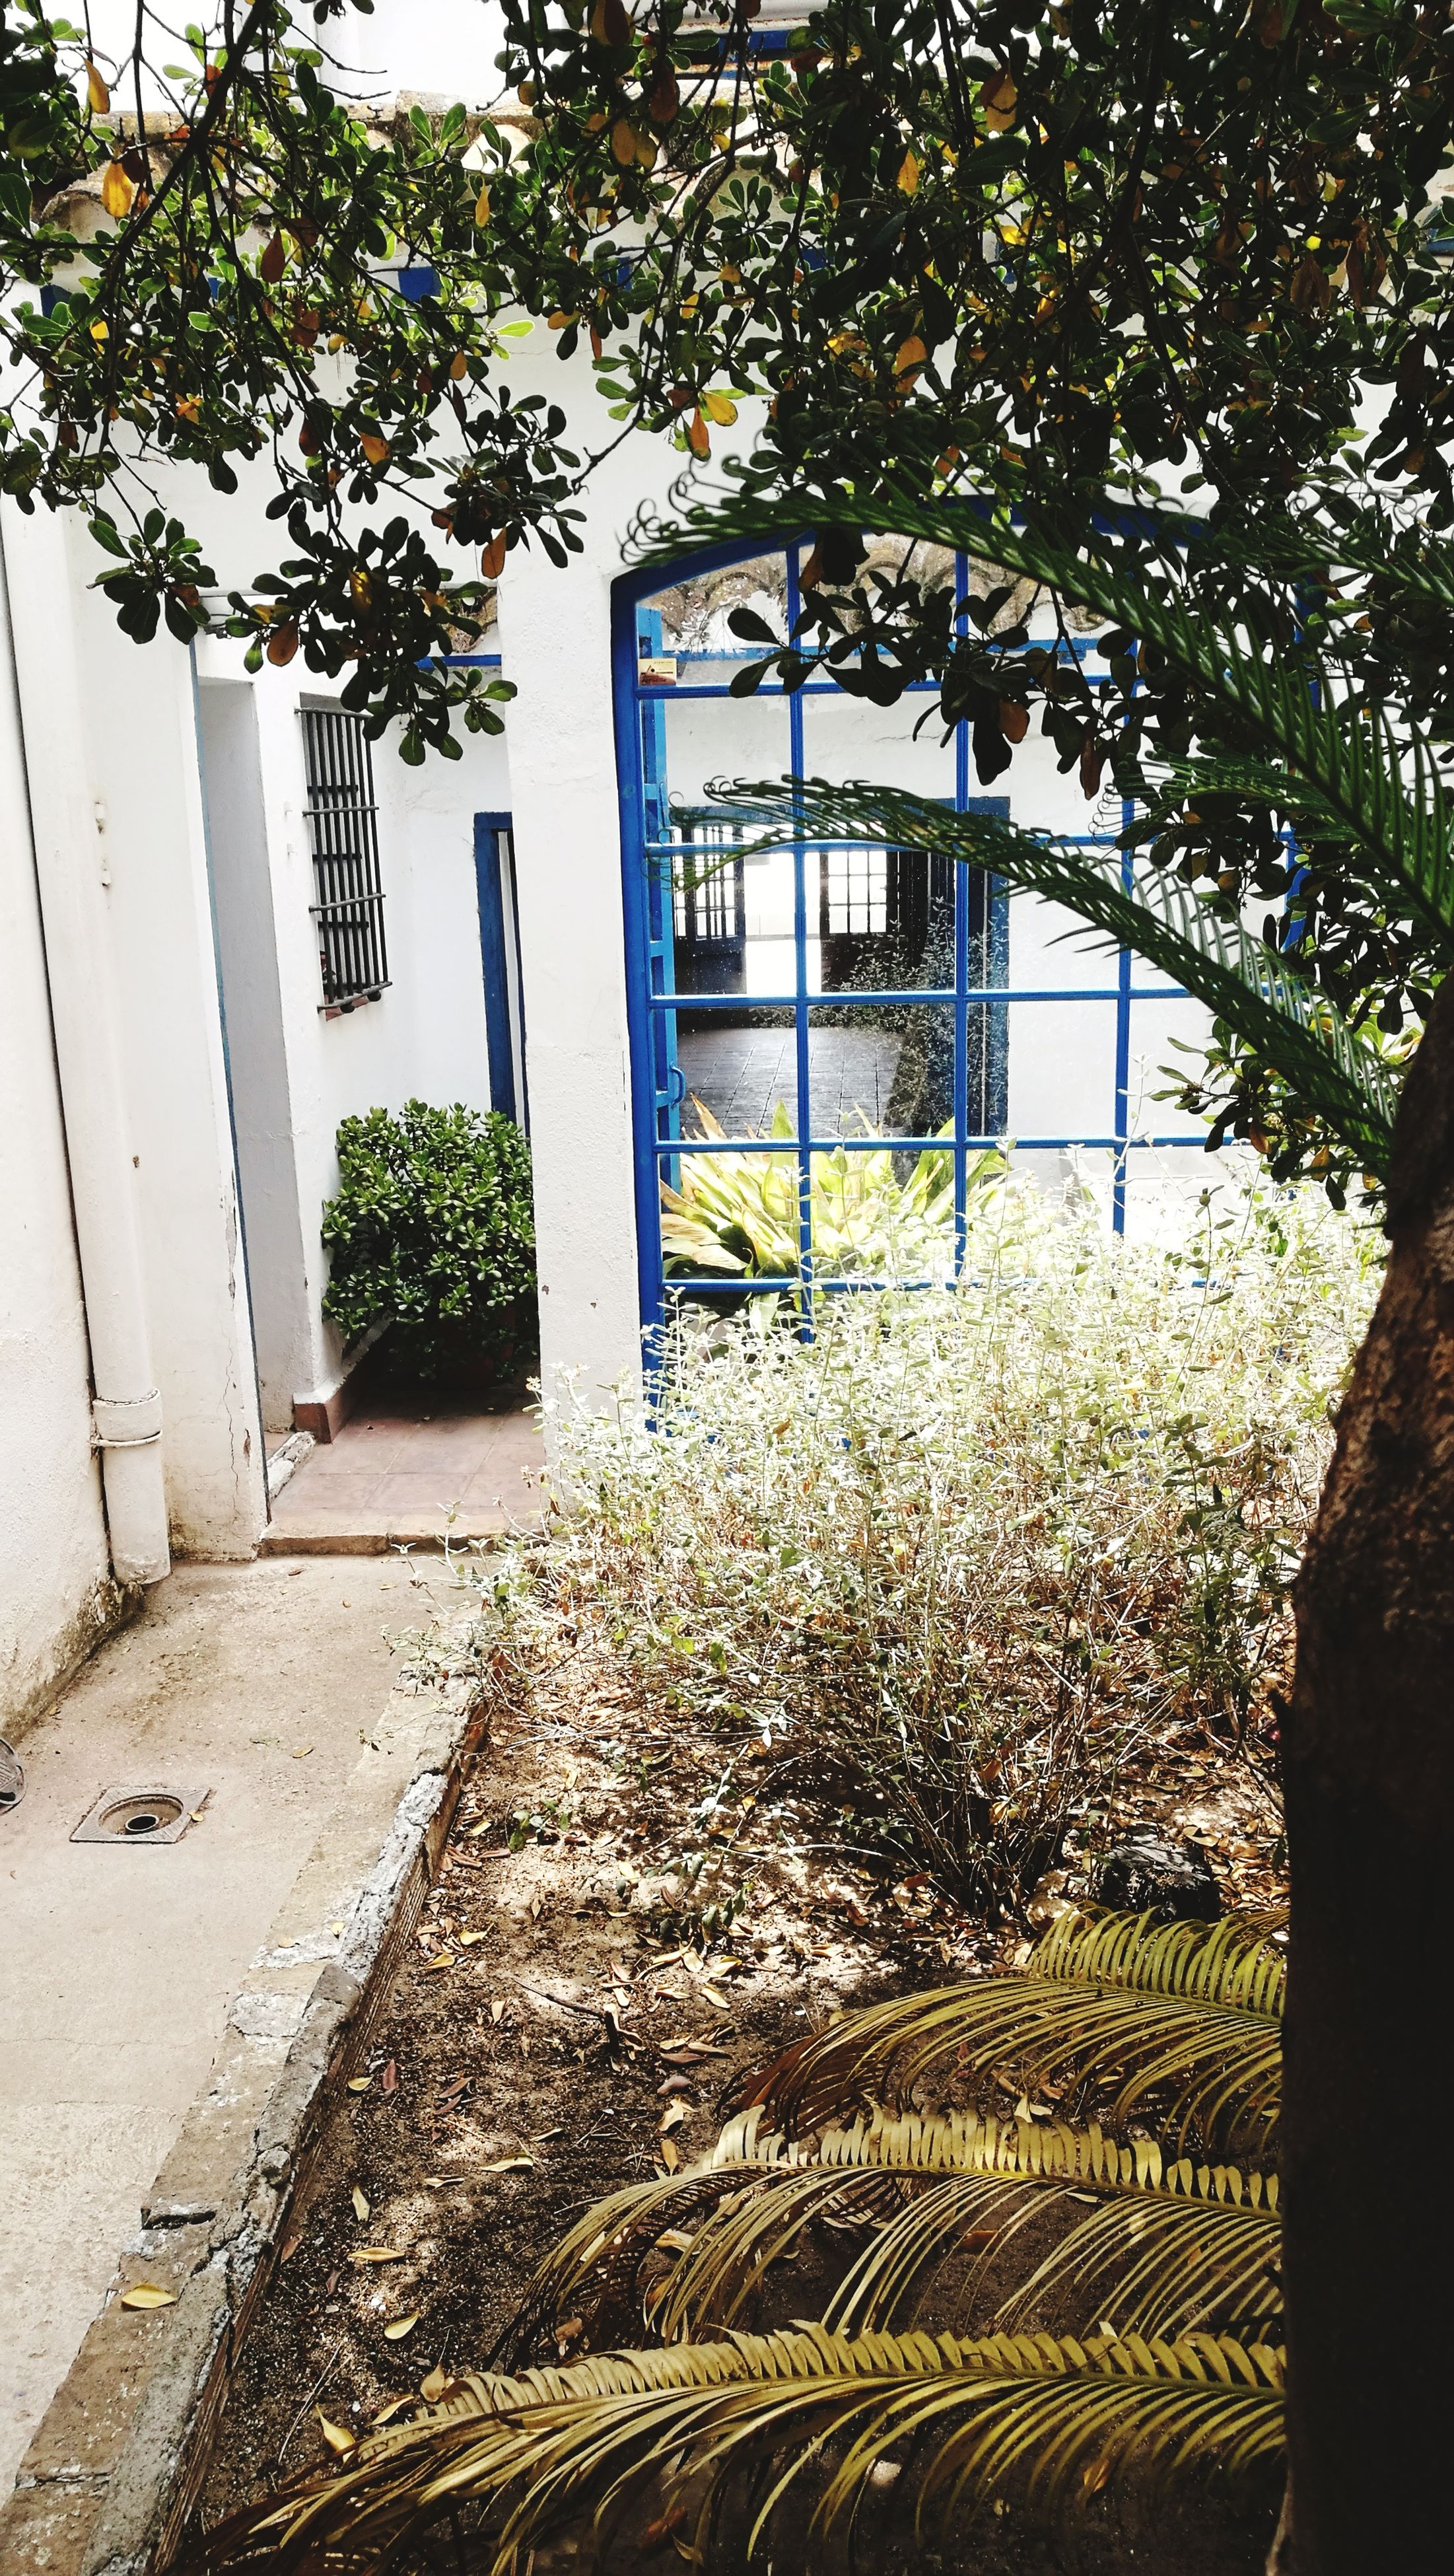 growth, door, house, entrance, architecture, plant, building exterior, tree, no people, built structure, day, outdoors, window, doorway, nature